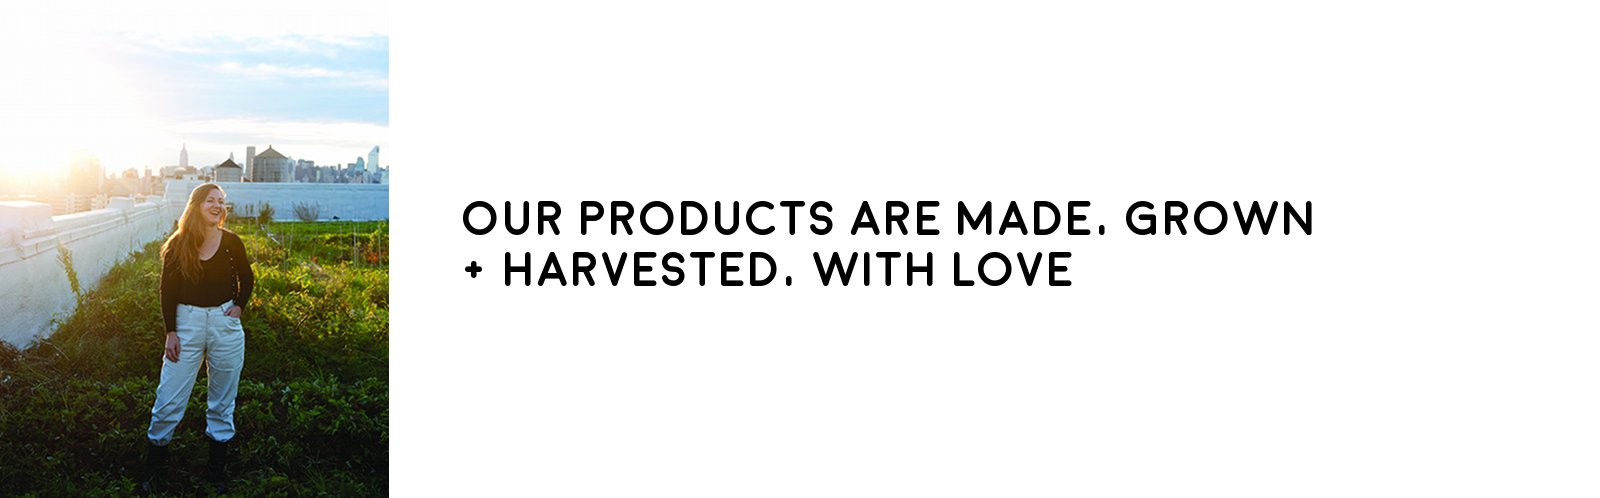 website B slide made with love products.jpg